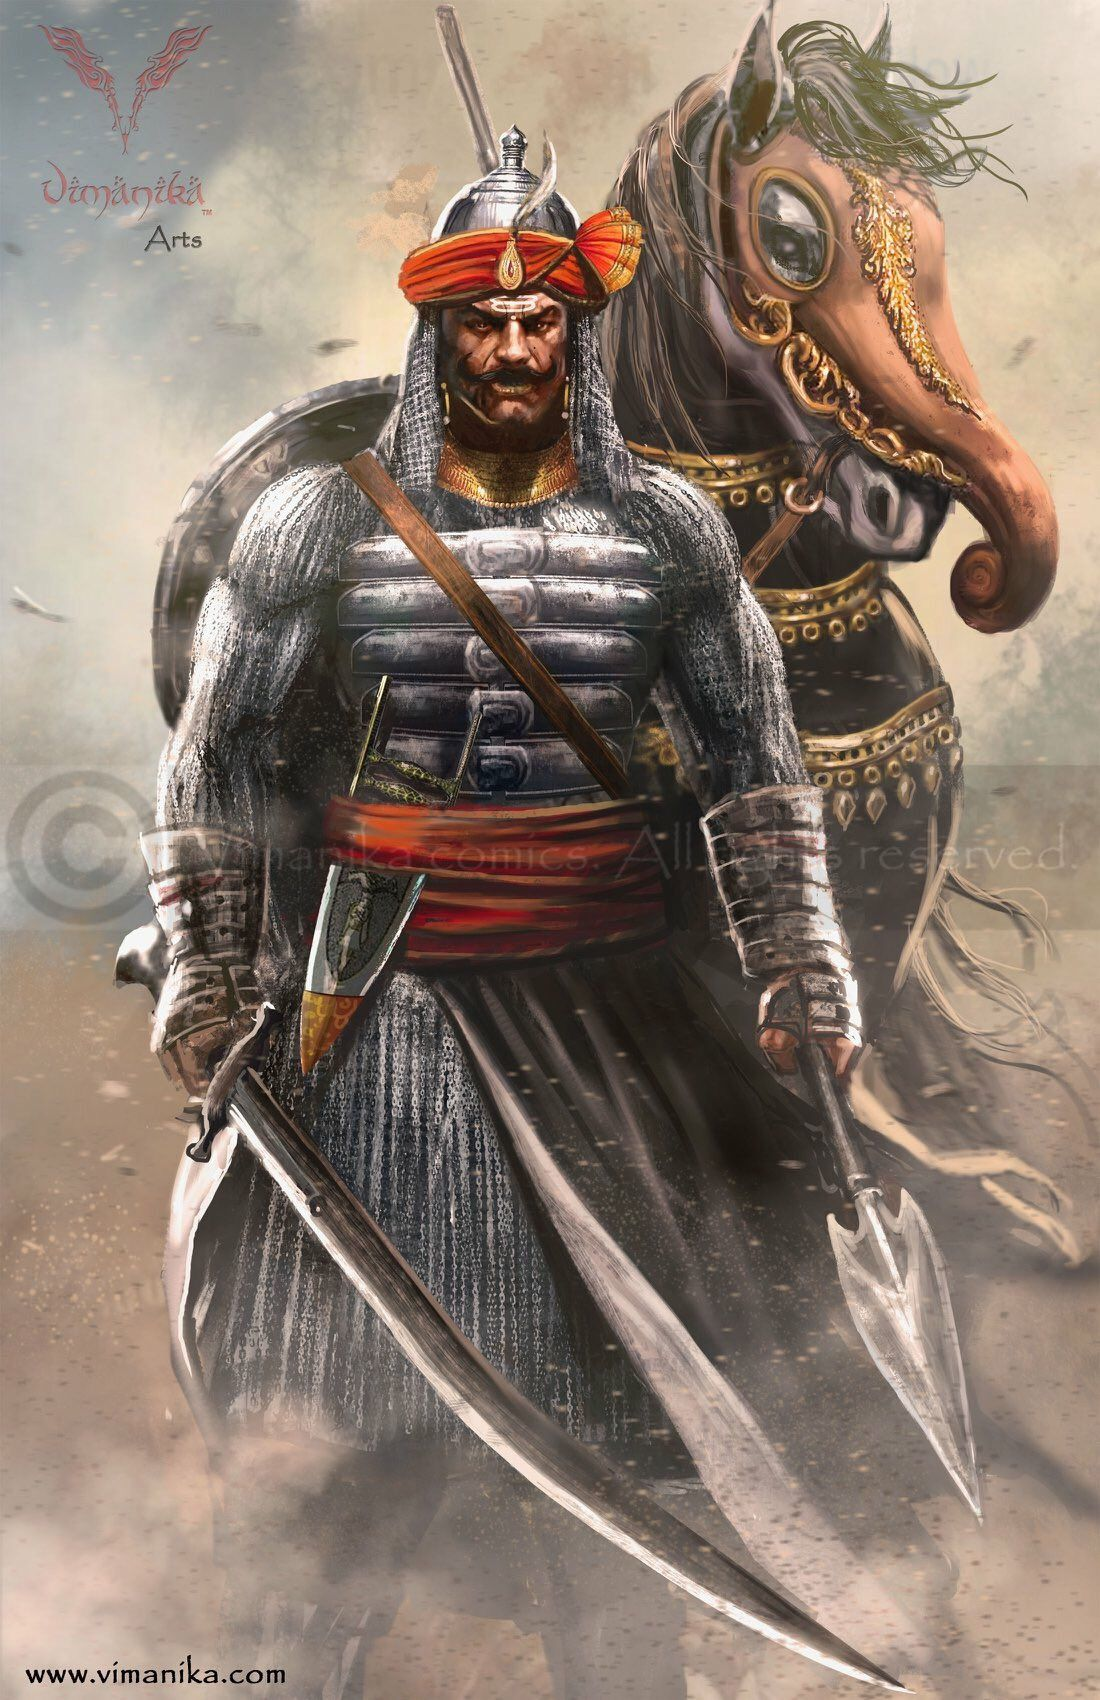 Maharana Pratap Wallpapers - Top Free Maharana Pratap Backgrounds ...